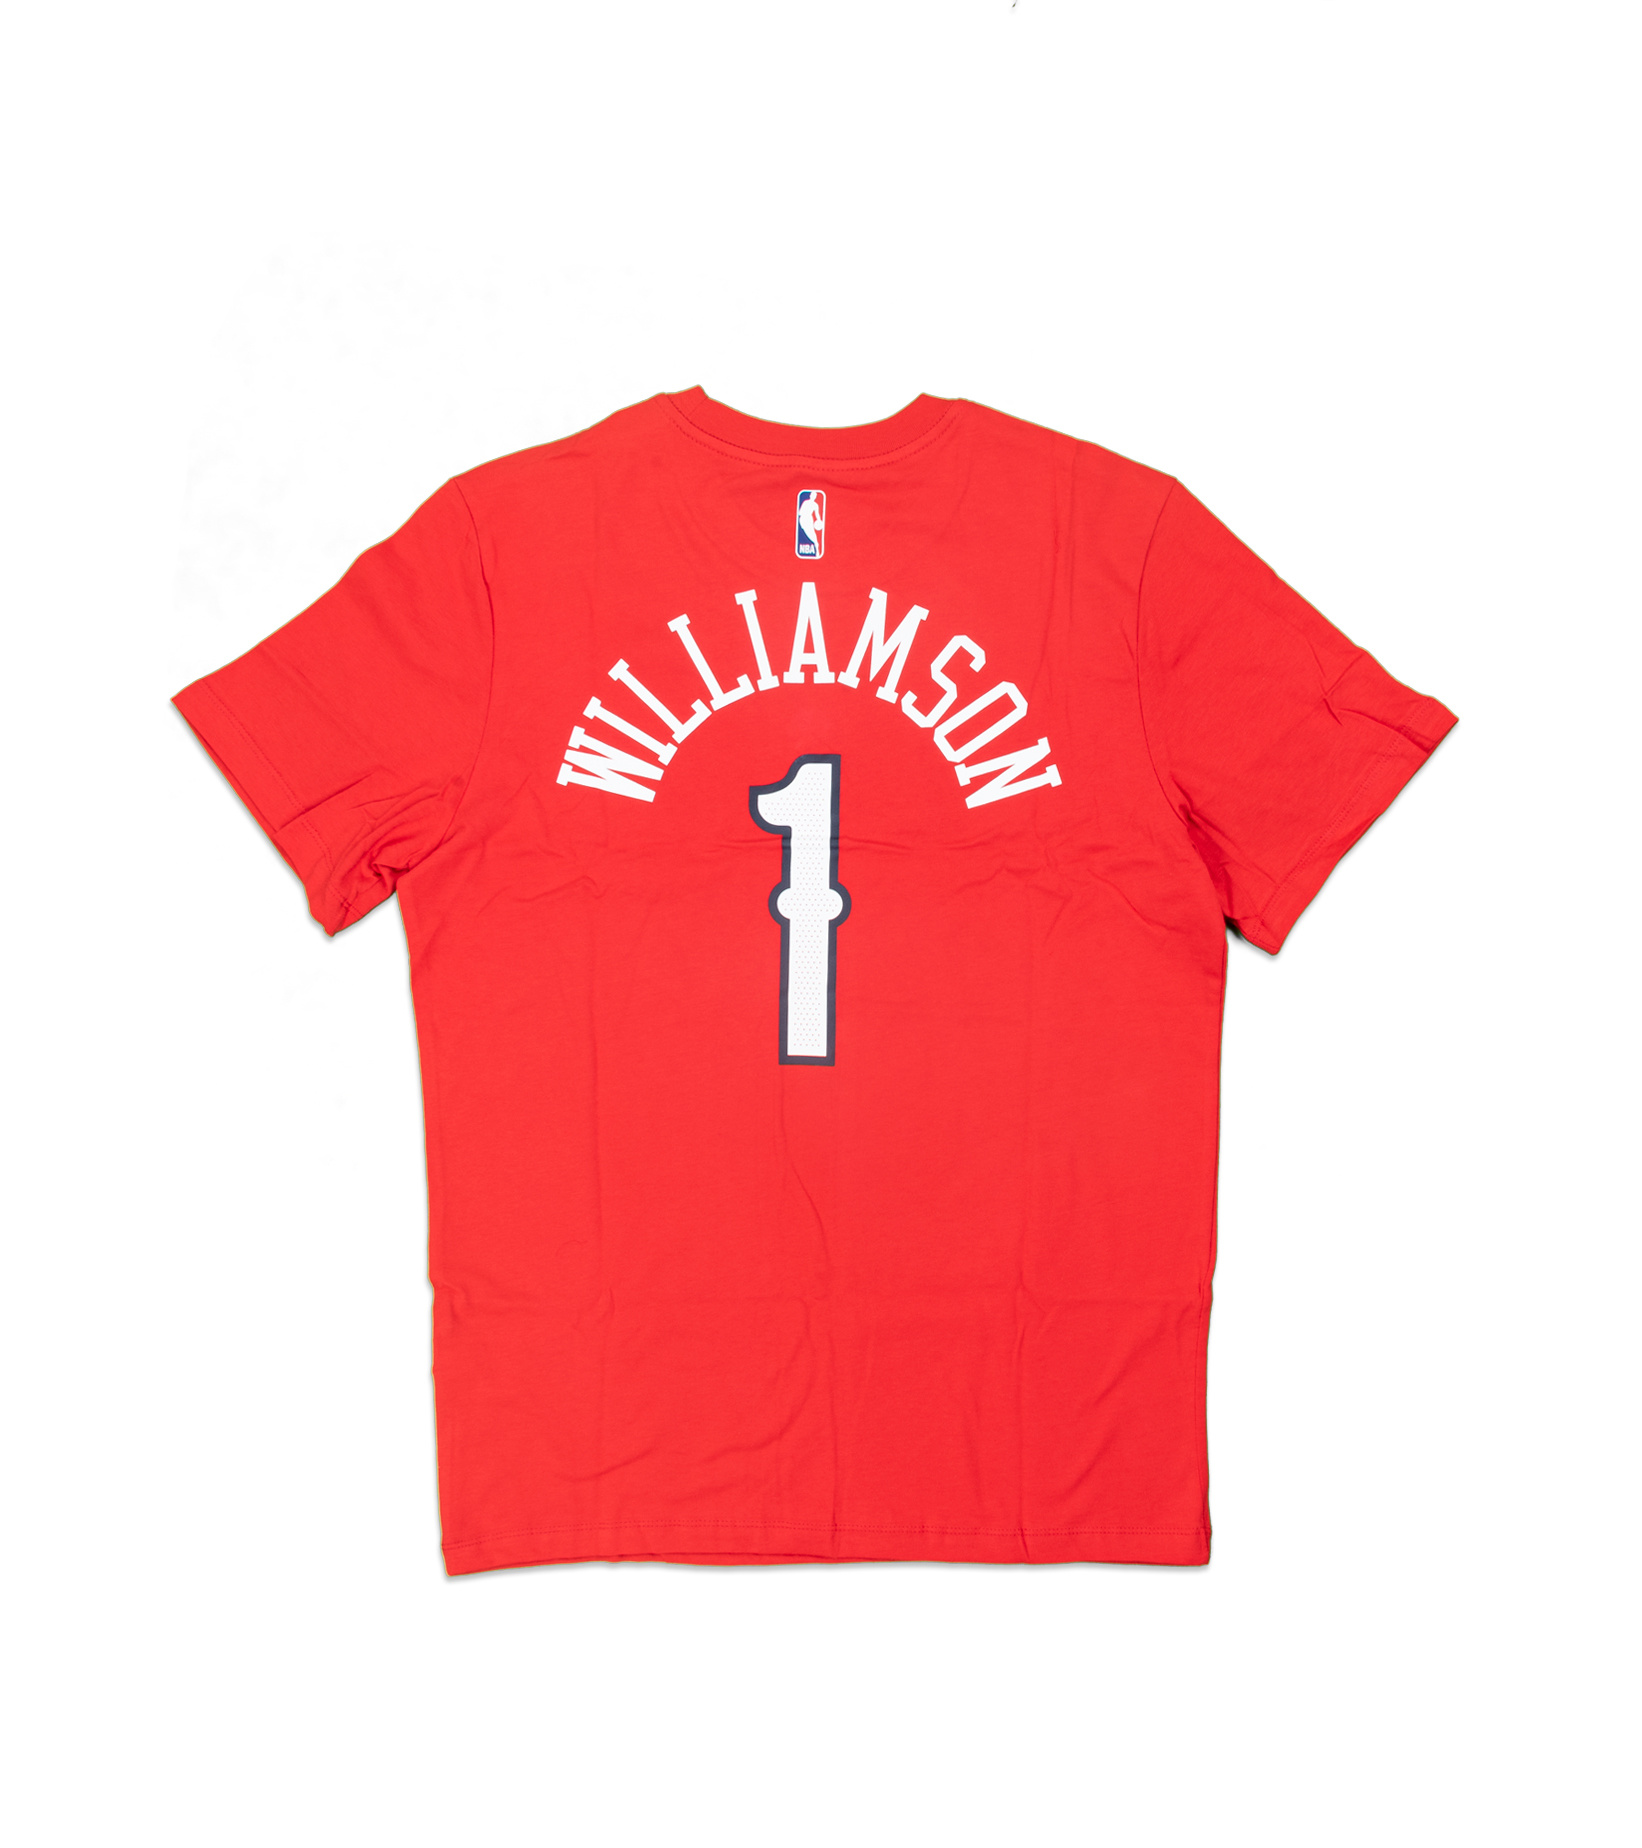 "Z. Williamson Statement Edition '20 Dri-Fit Tee ""University Red""-3"